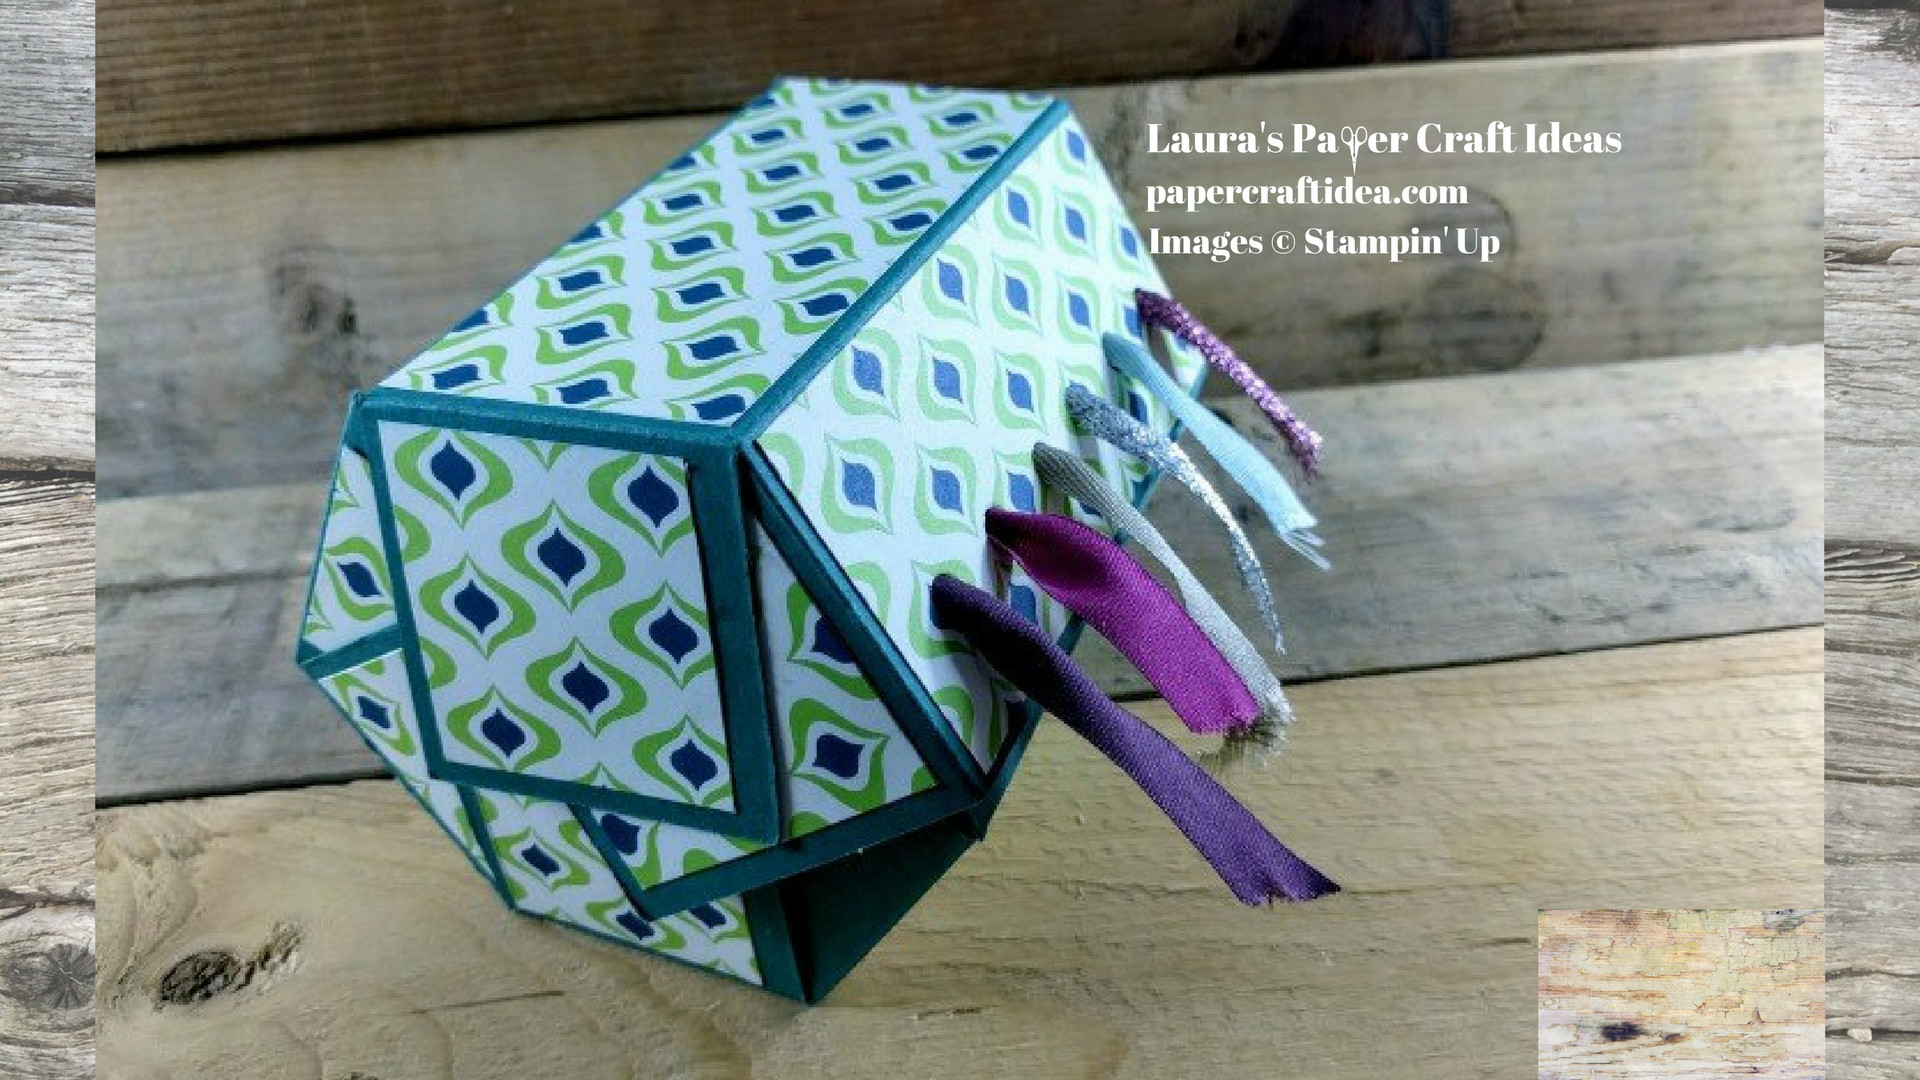 Ribbon Craft Ideas For Adults  DIY Ribbon Holder Stampin Up Laura s Paper Craft Ideas